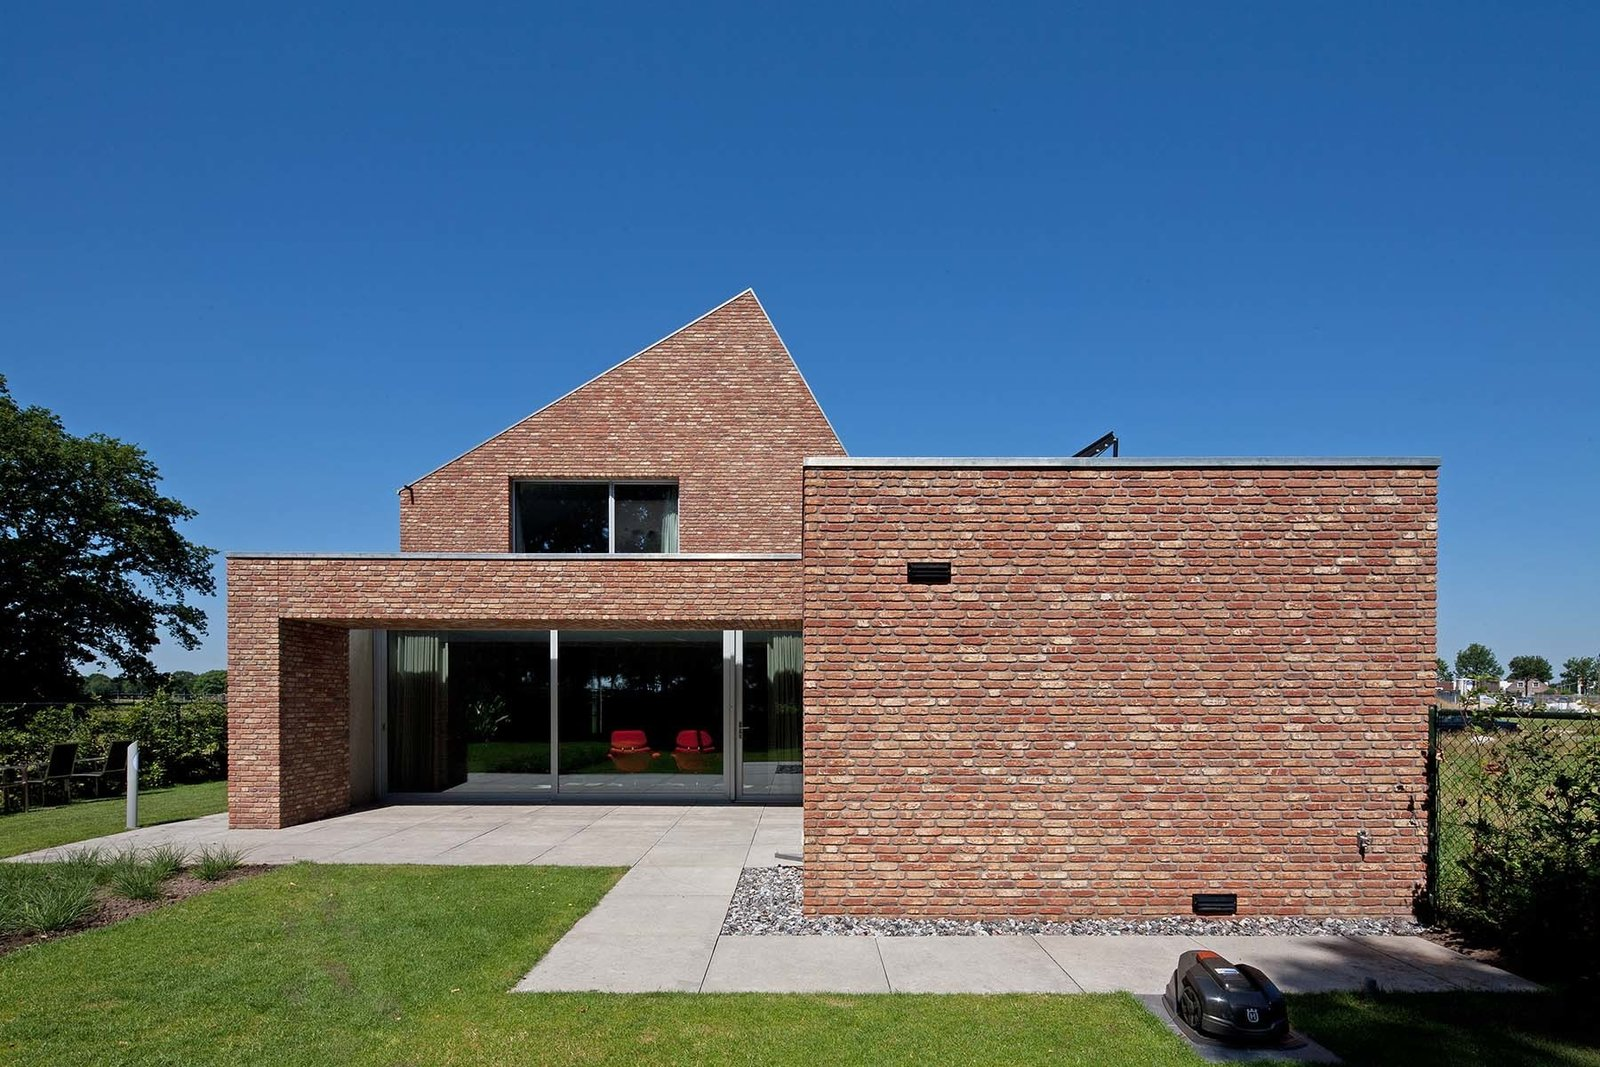 Grass, Back Yard, Exterior, Brick, and House It's traditional among homes in the region to enter through their backdoor, seen here. The door leads directly to the living room.  Best Exterior Brick Back Yard Photos from A Dutch Home that Plays with Traditional Brick Architecture